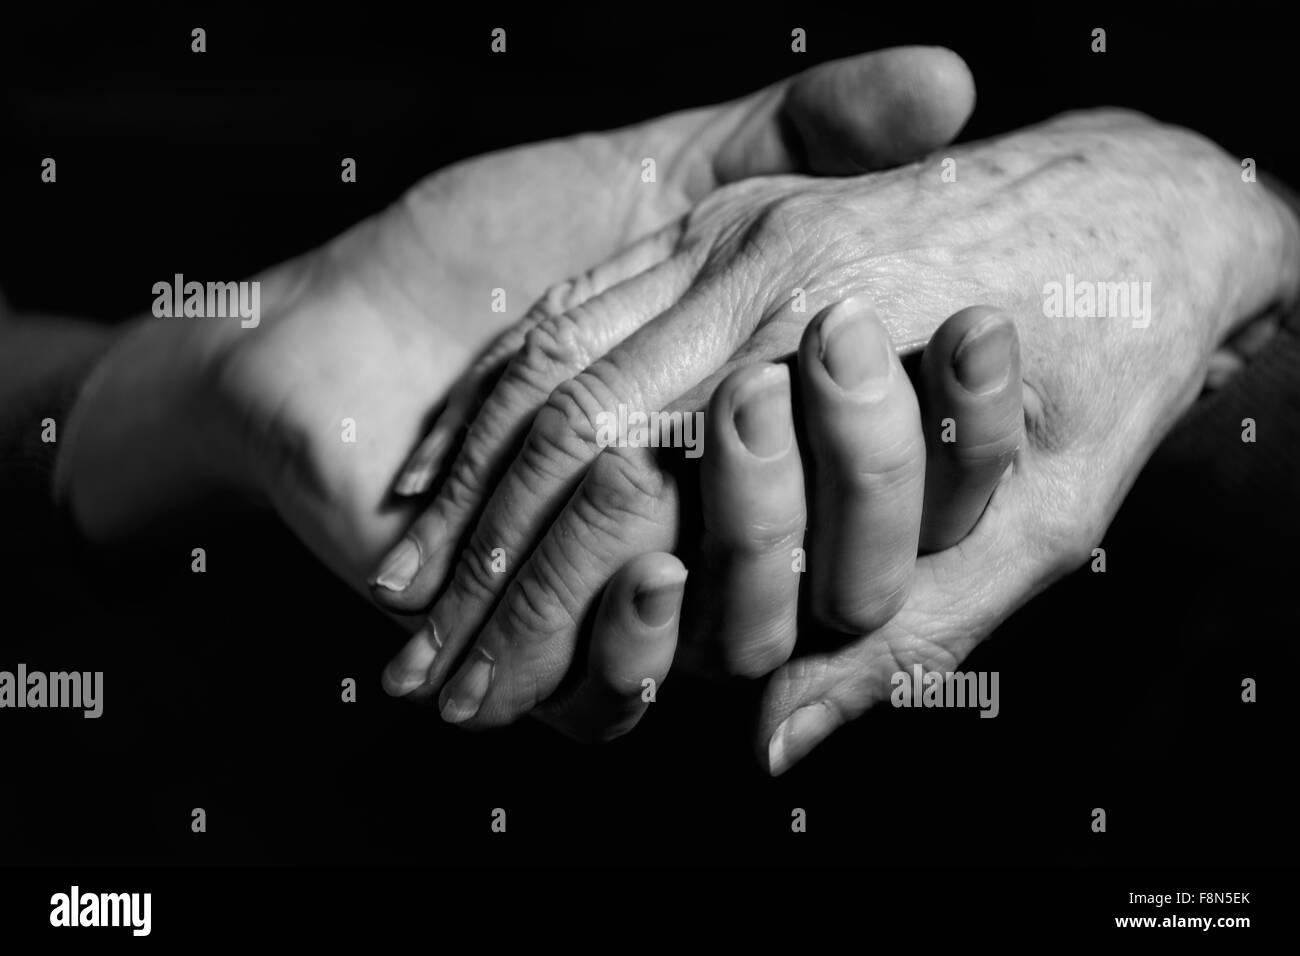 Monochrome Shot Of Young Woman Holding Older Woman's Hand - Stock Image